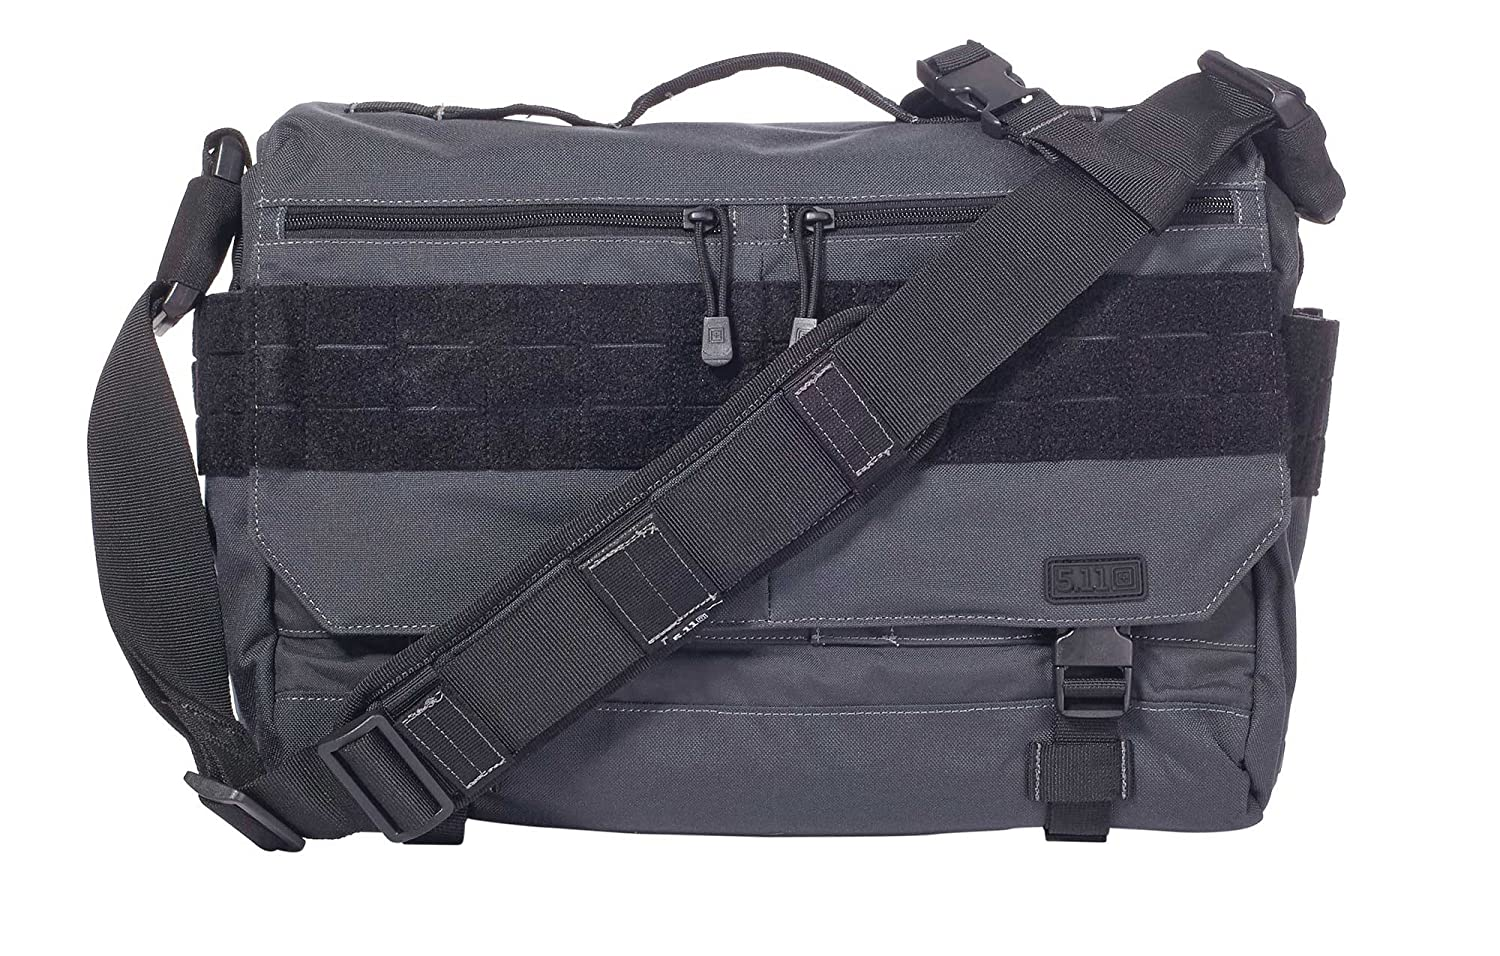 5.11 Tactical Rush Delivery LIMA Bag - Double Tap 56177-026